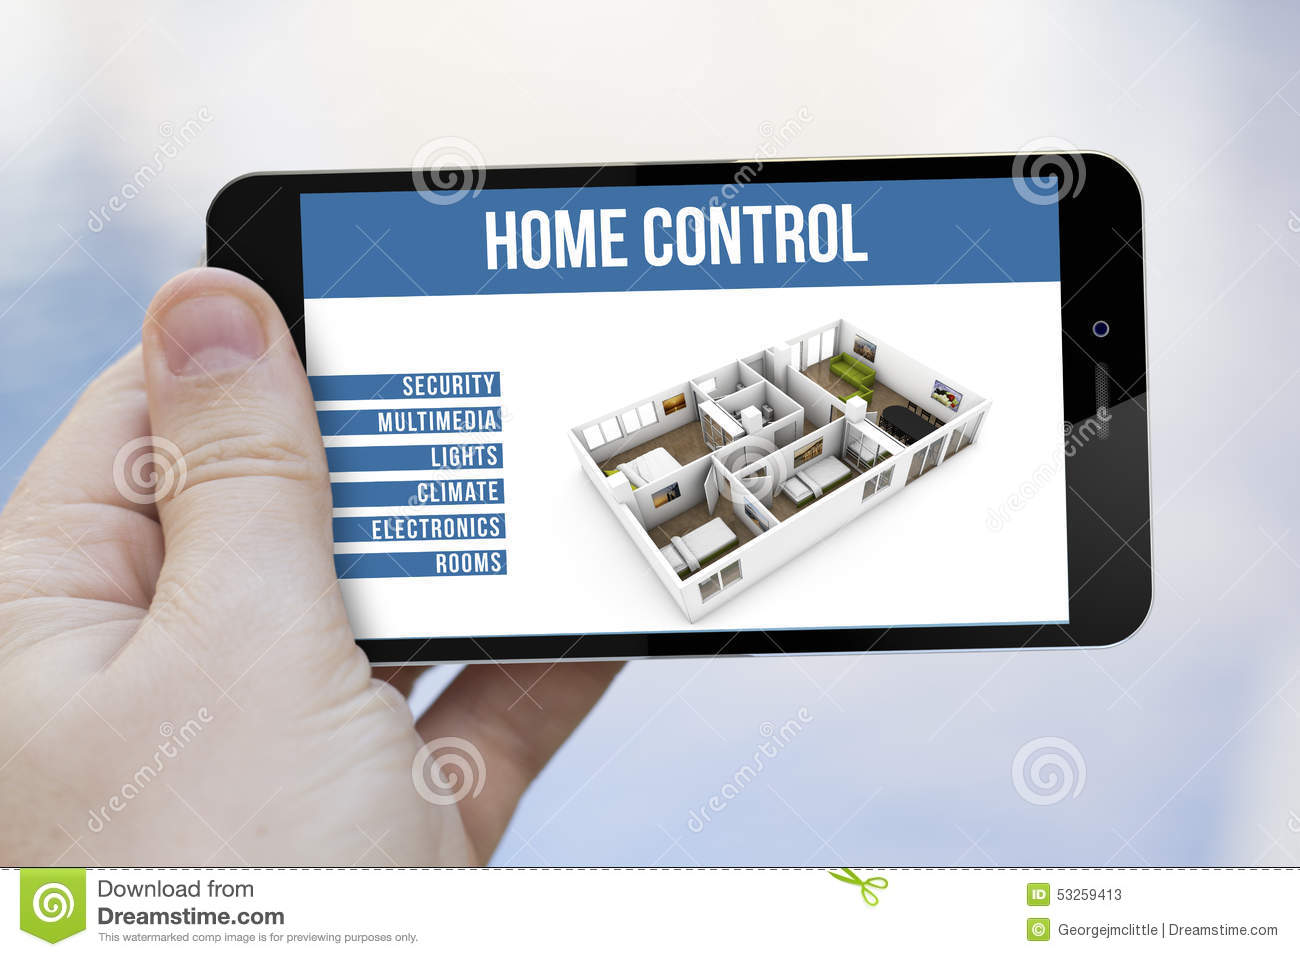 Smartphone Home Control control home with phone. broadlink rm prorm2 smart home automation